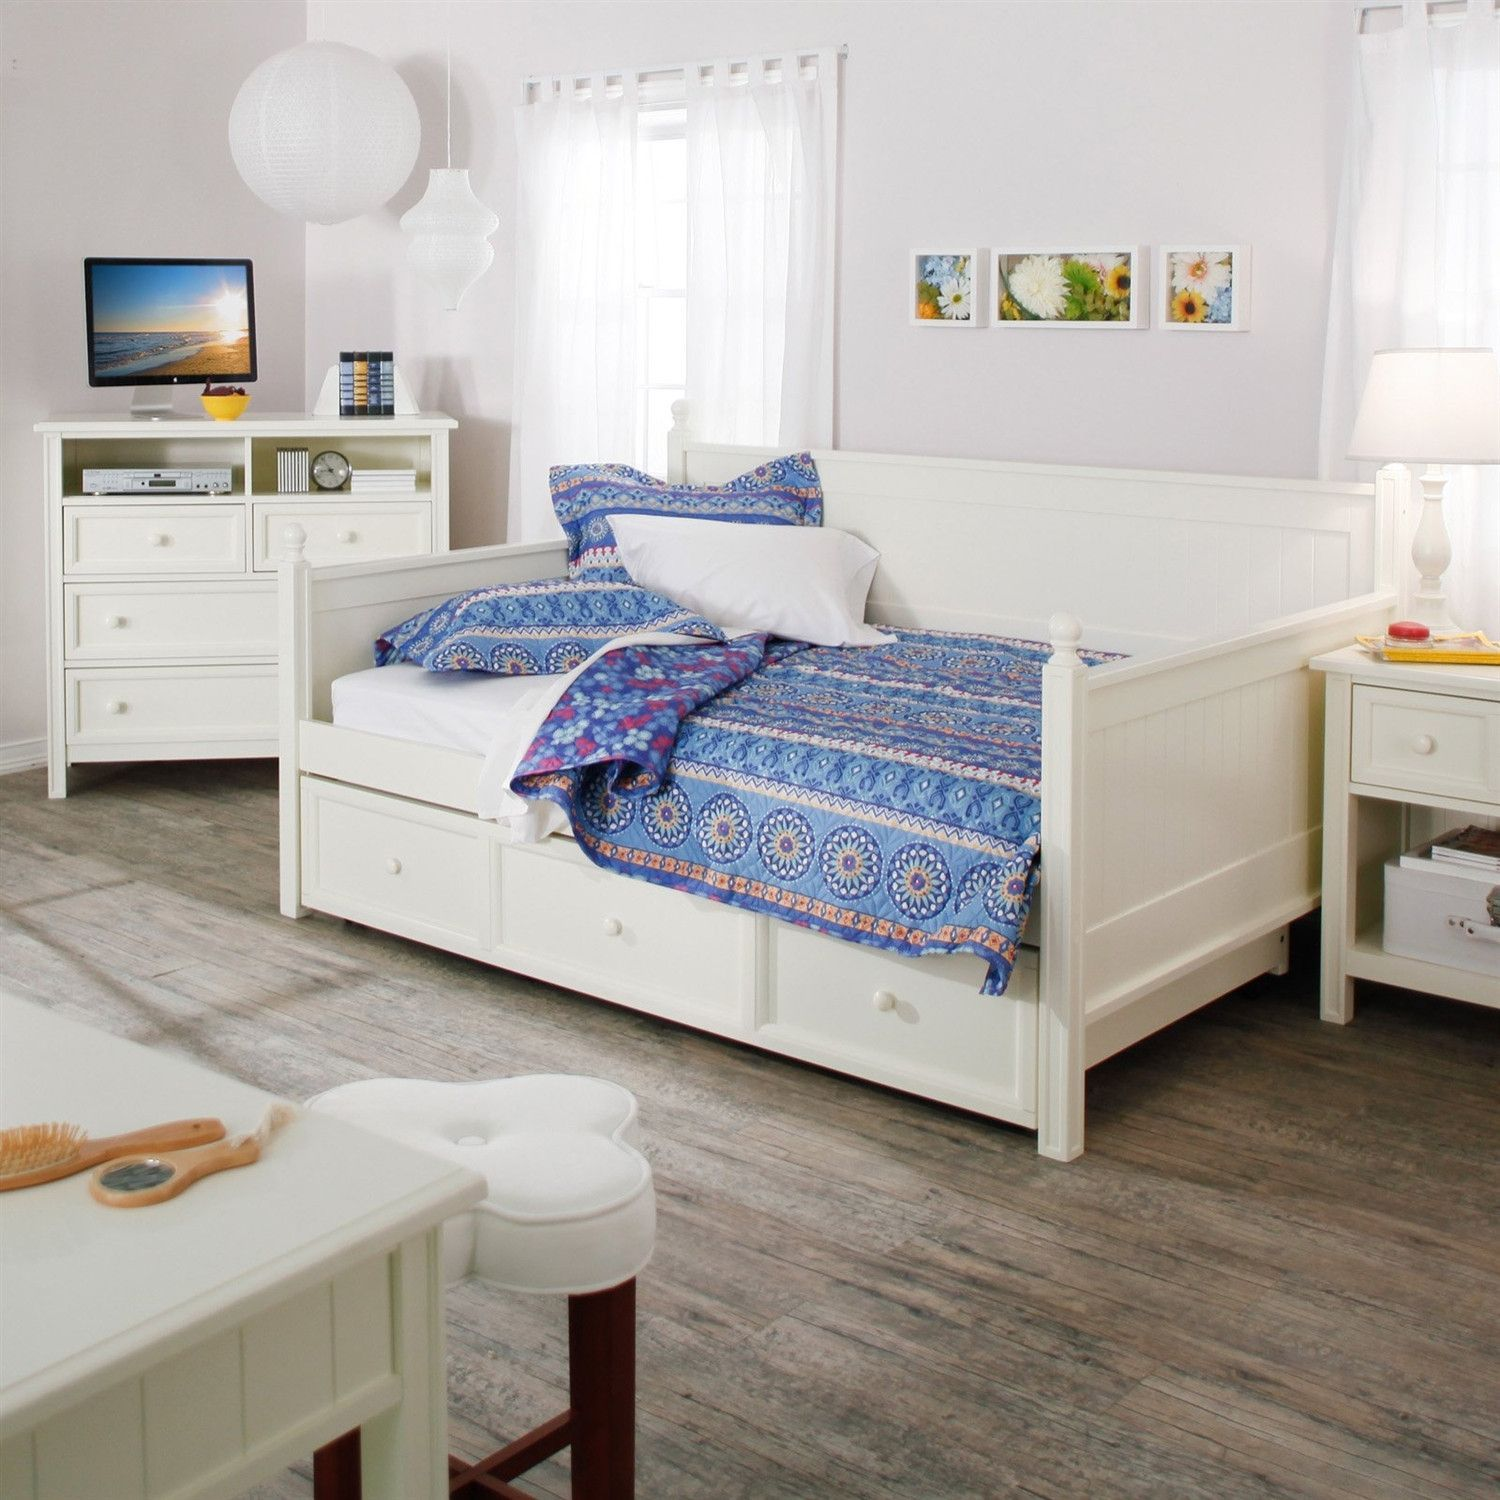 Splashy ikea hemnes daybed technique san francisco contemporary kids - Full Size White Wood Daybed With Pull Out Trundle